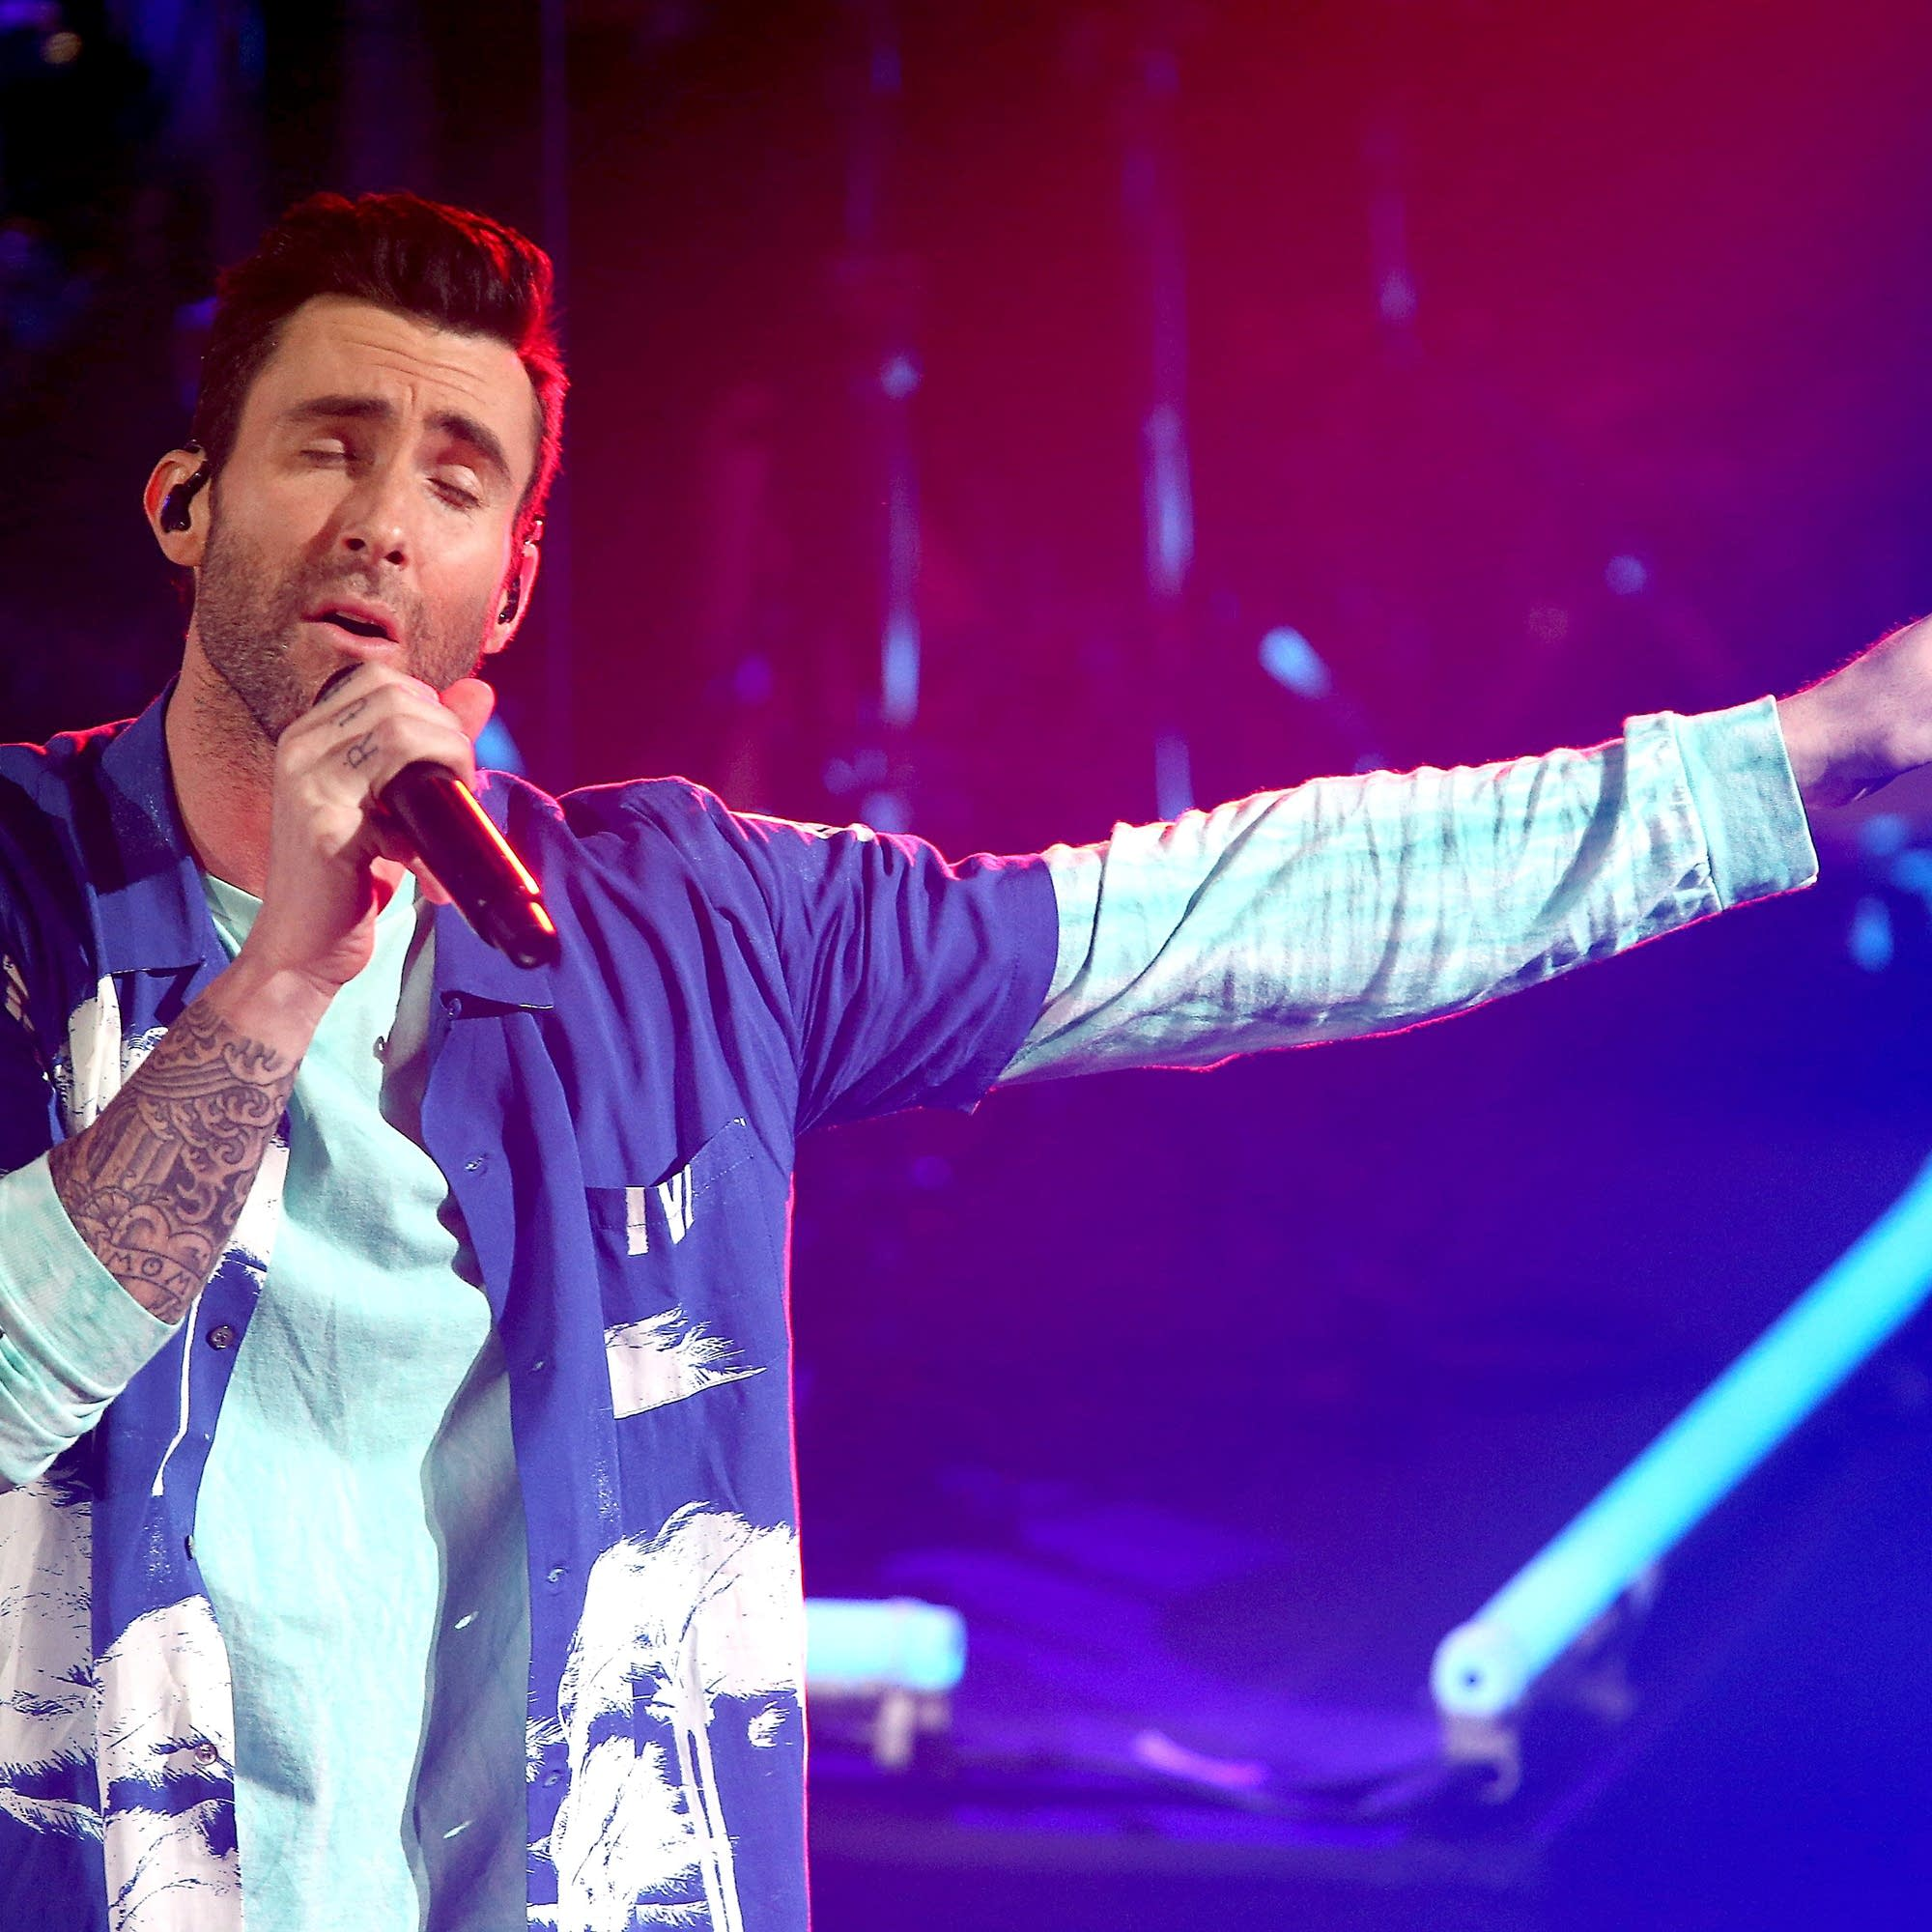 Adam Levine performs with Maroon 5 in 2017.